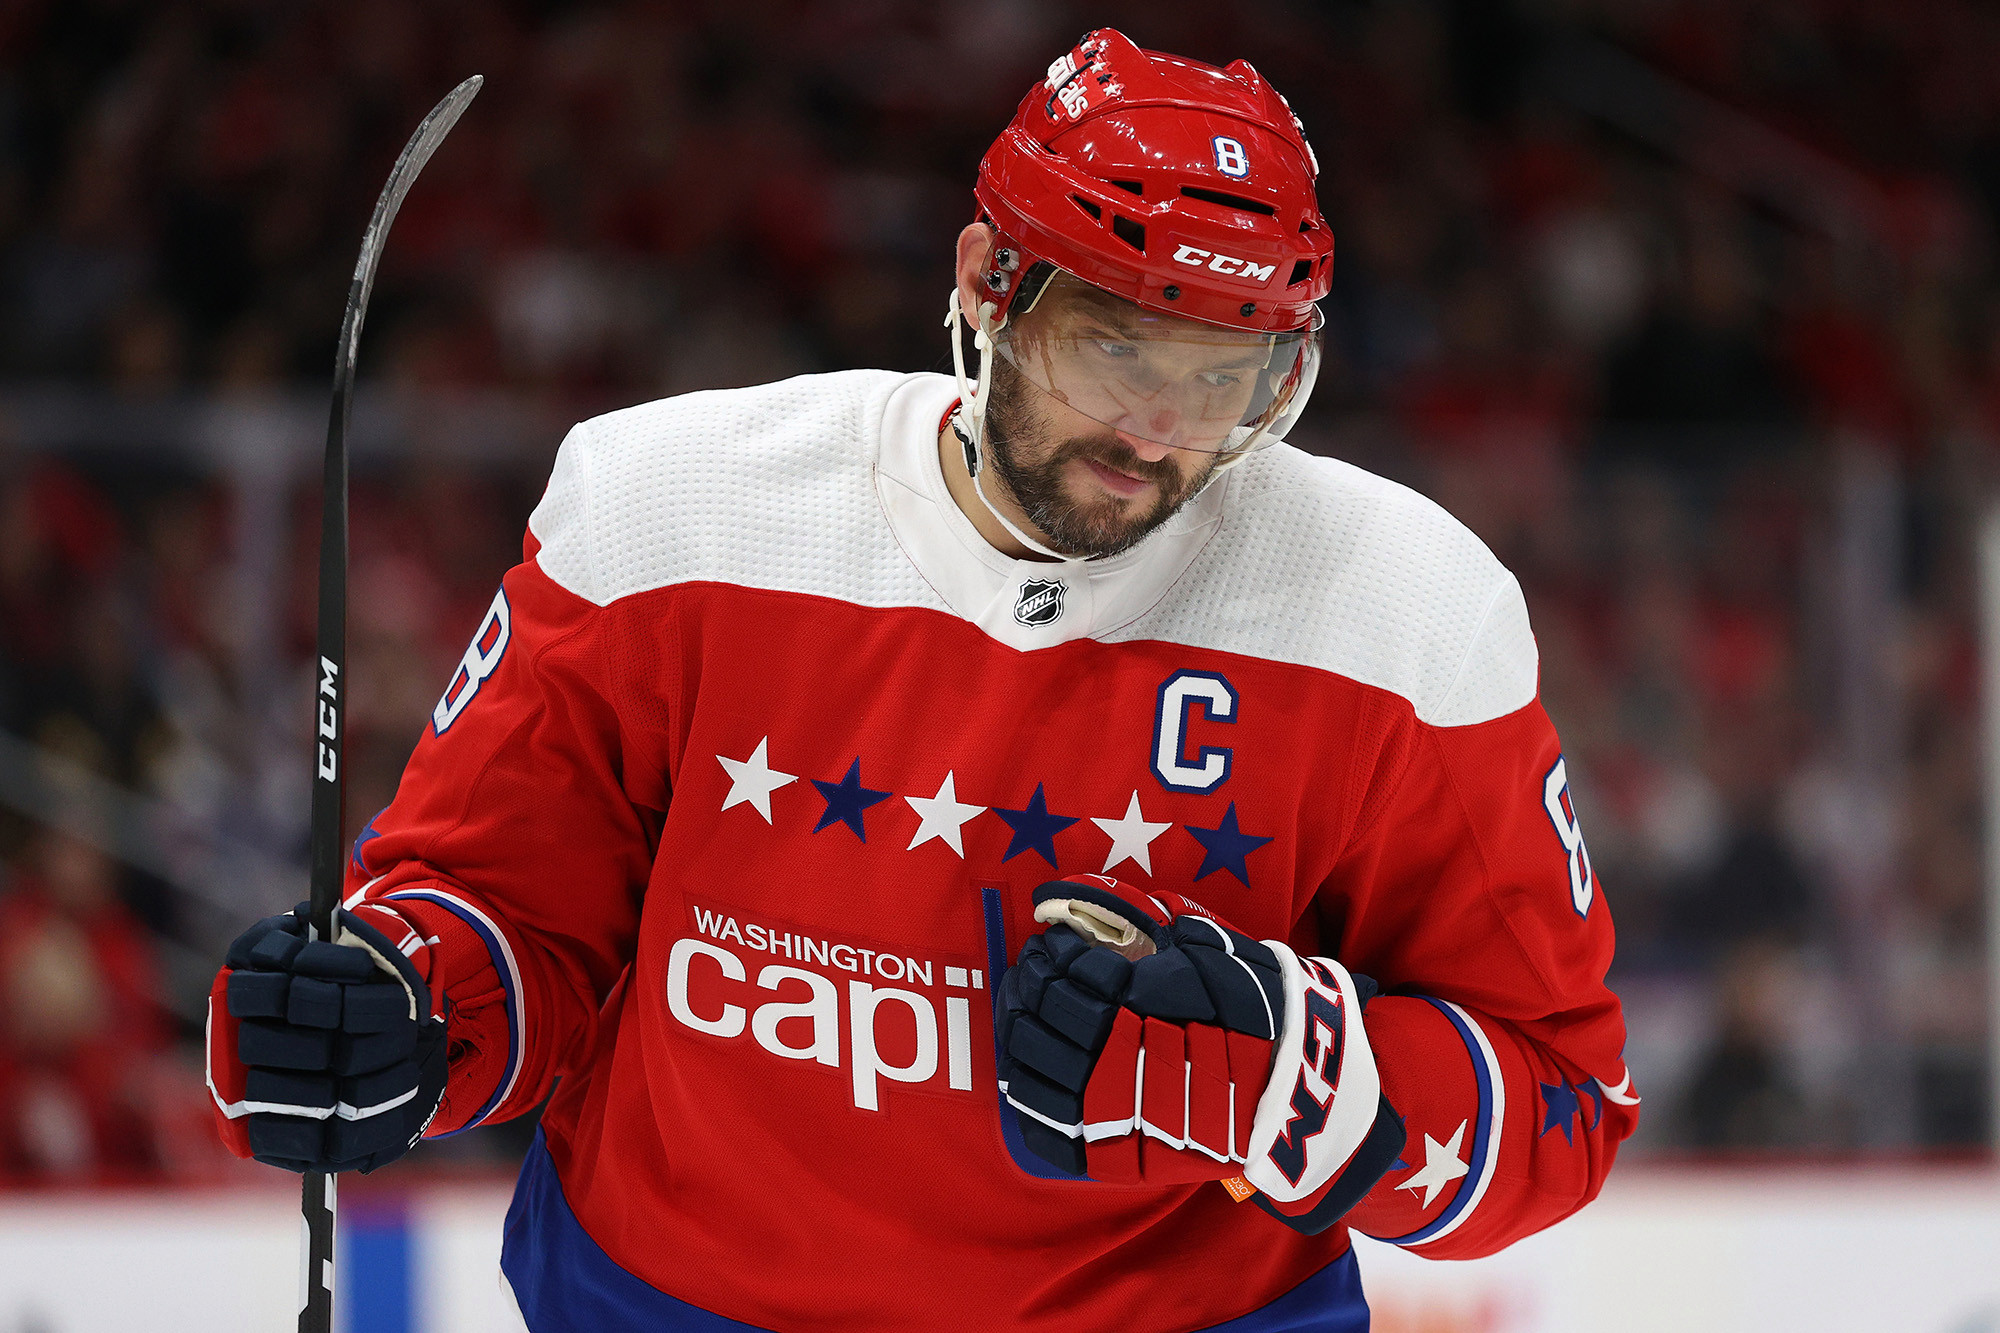 Alex Ovechkin's unsurprising COVID-19 mishap only hurts him